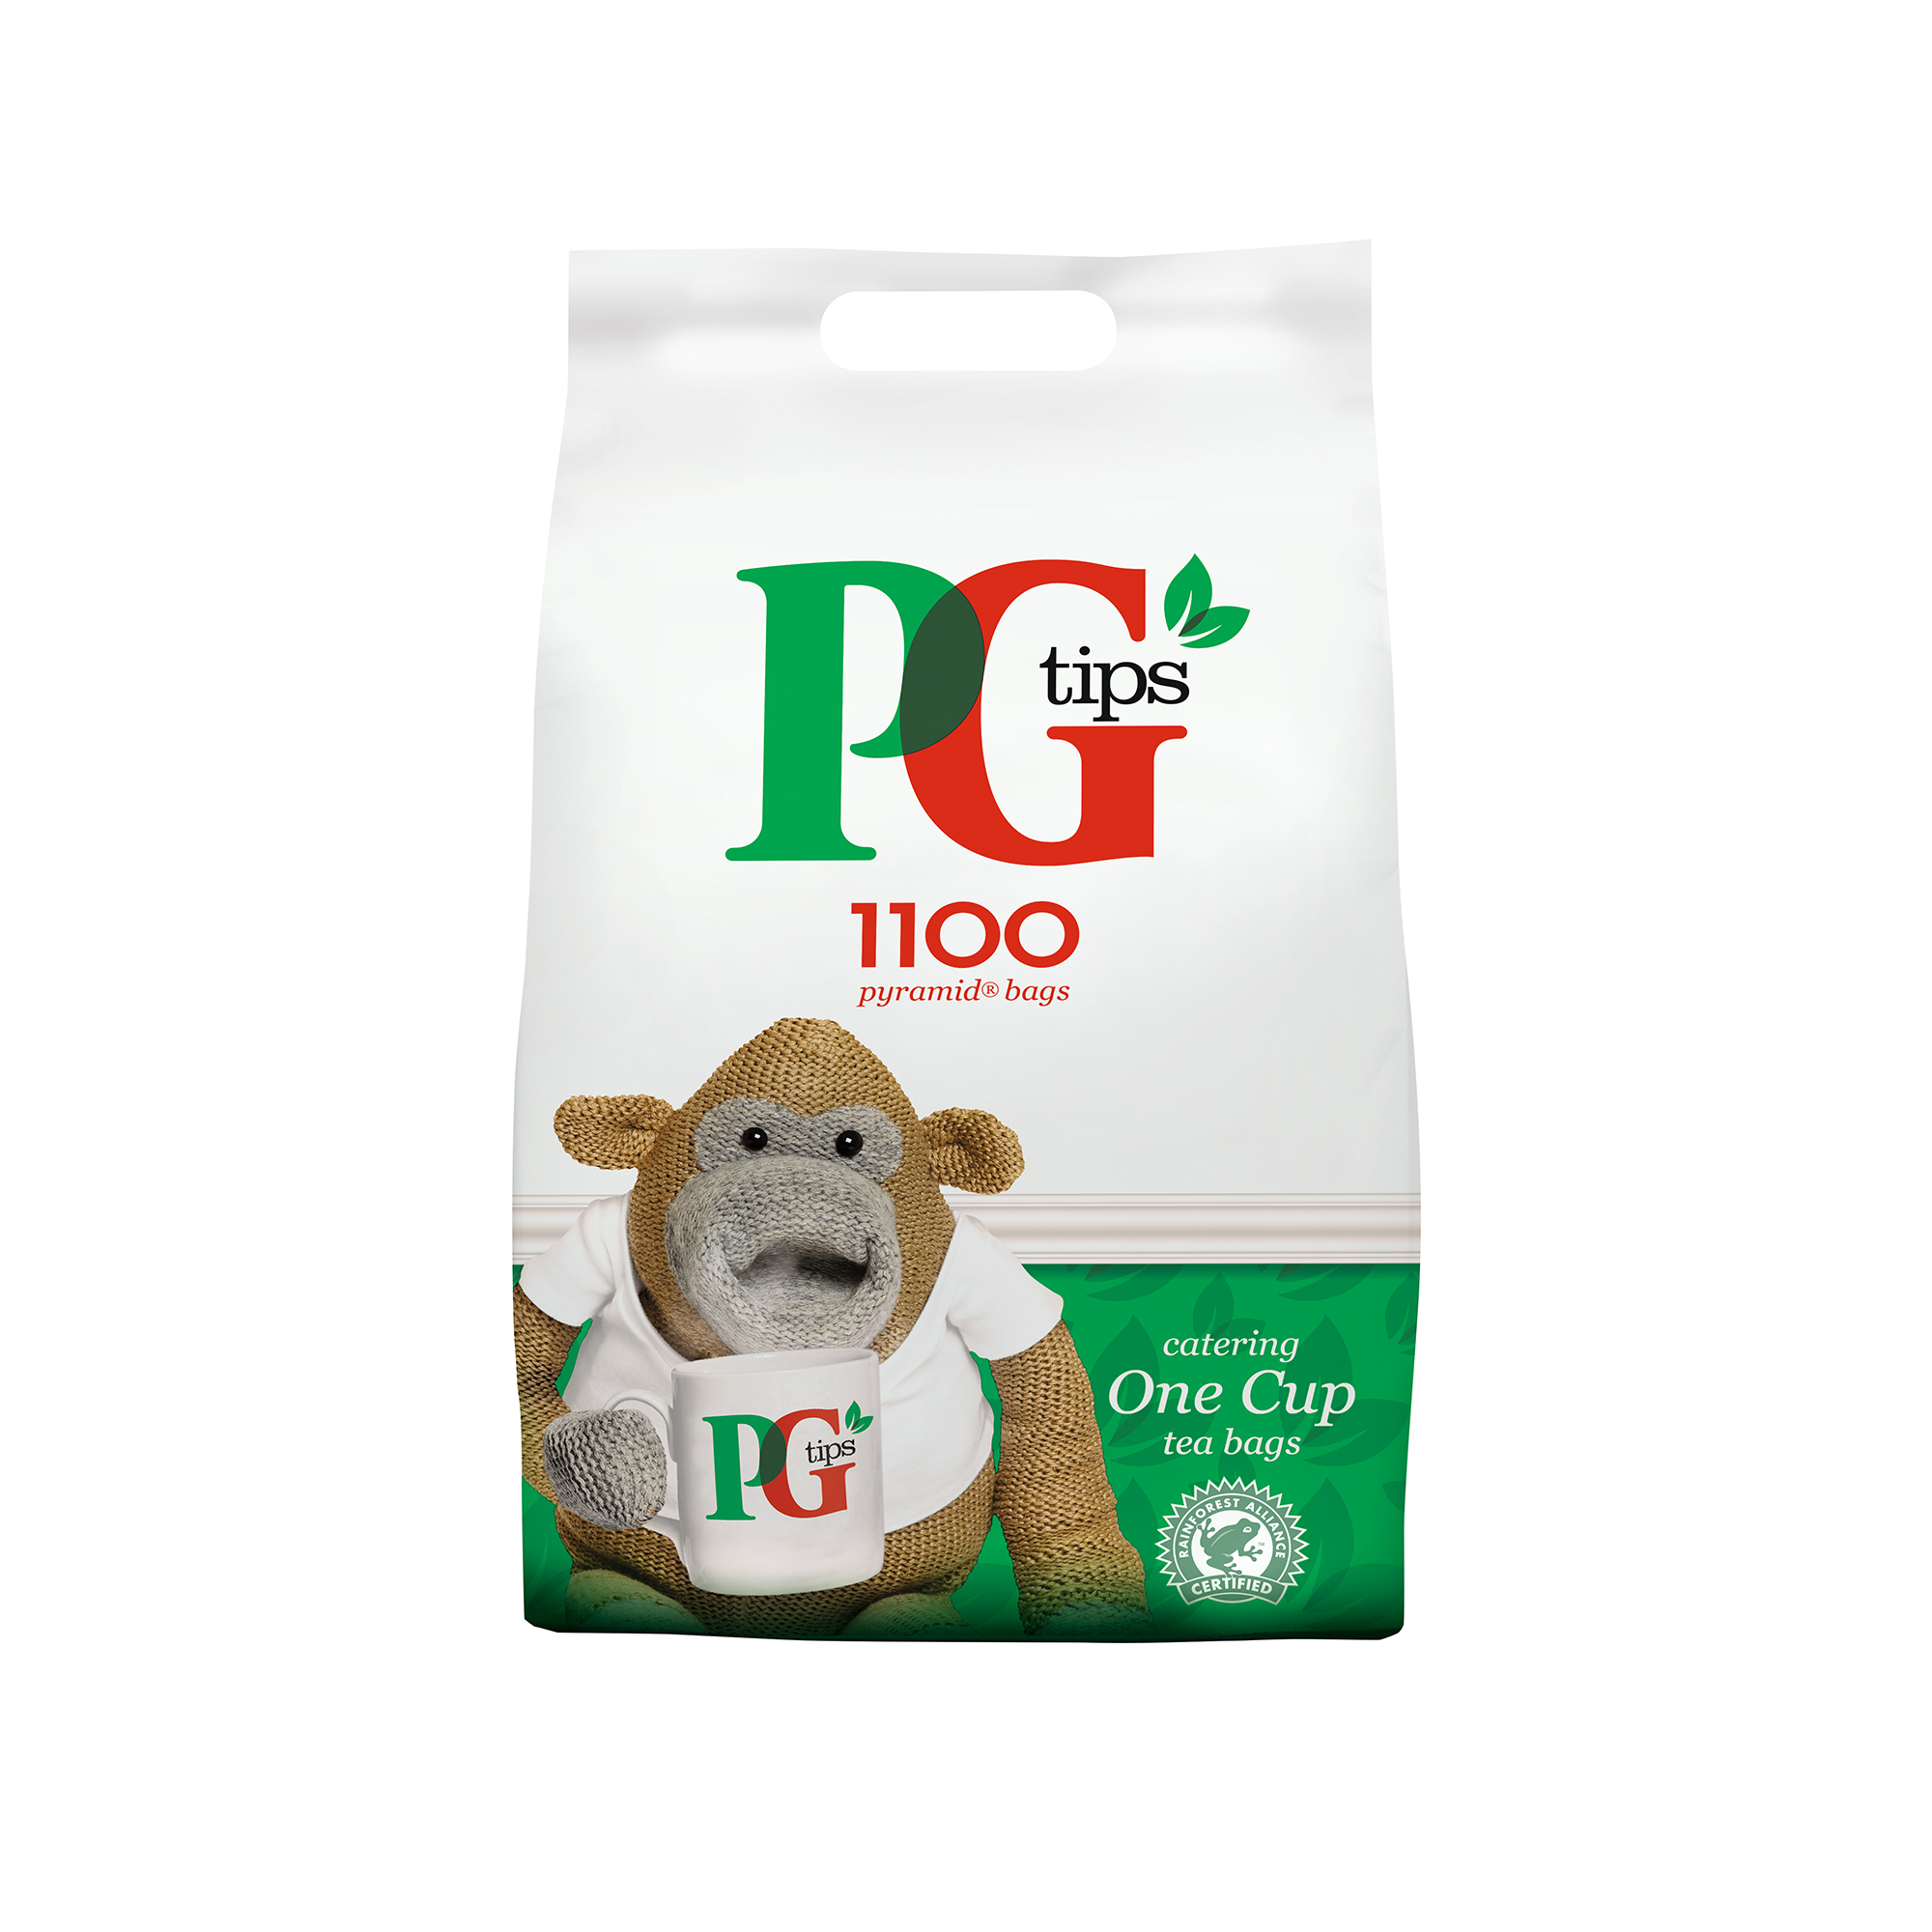 Tea PG Tips Tea Bags Pyramid 1 Cup Ref 67395661 Pack 1100